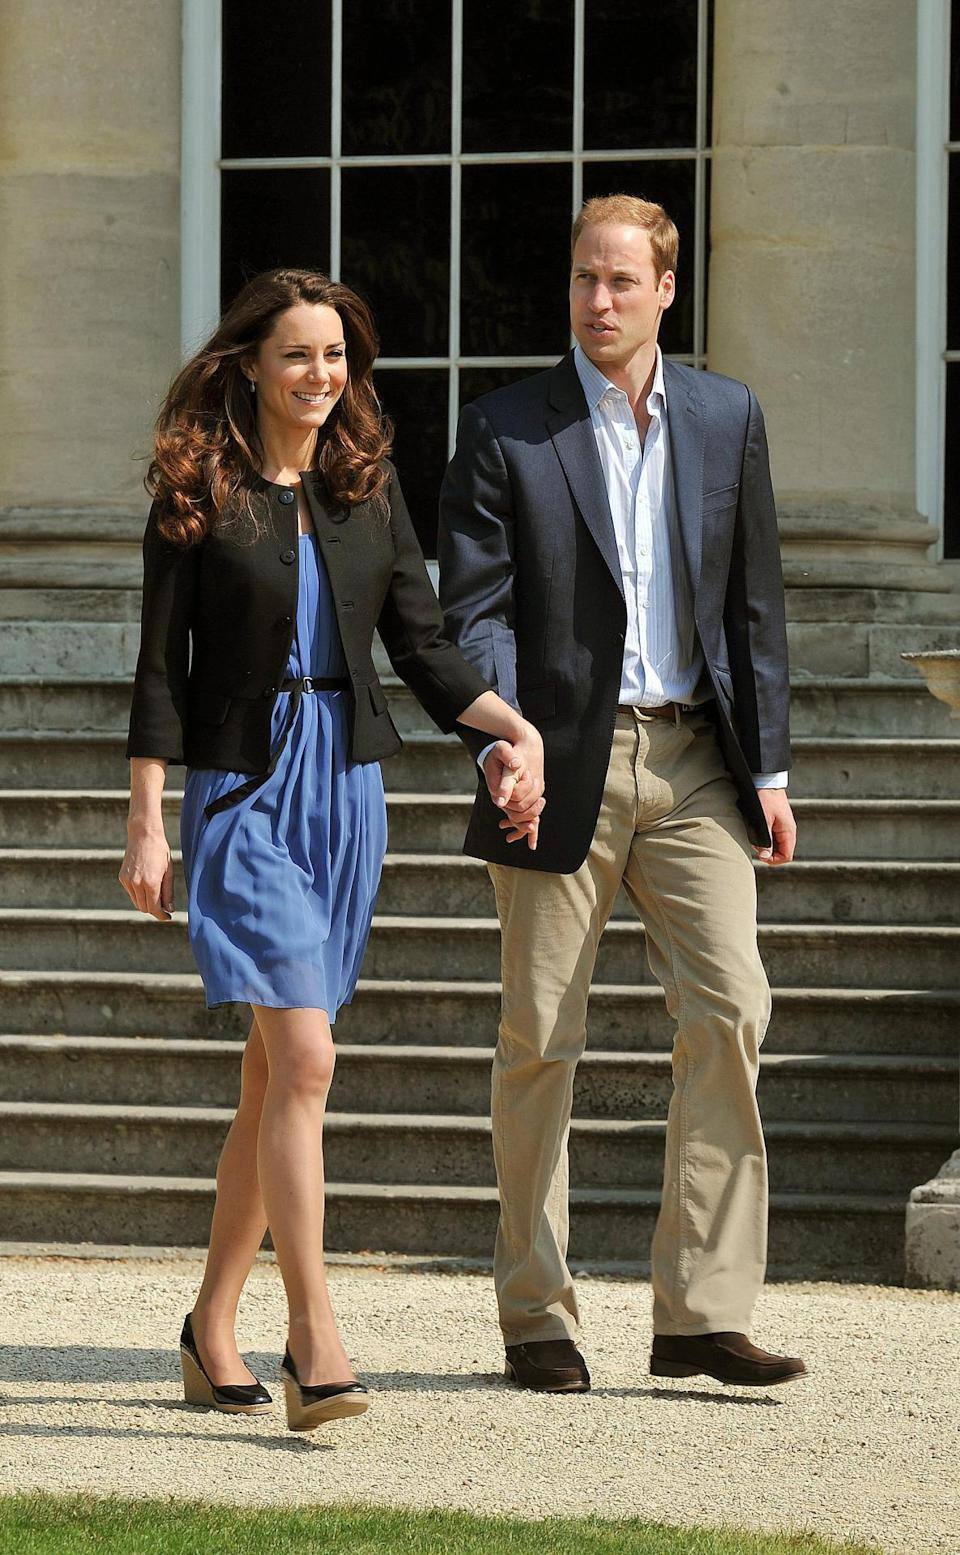 <p>Kate and William leave Buckingham Palace the day after their wedding with the Duchess dressed in a casual blue Zara dress with patent L.K. Bennett wedges and a simple black jacket. </p><p><i>[Photo: PA]</i></p>